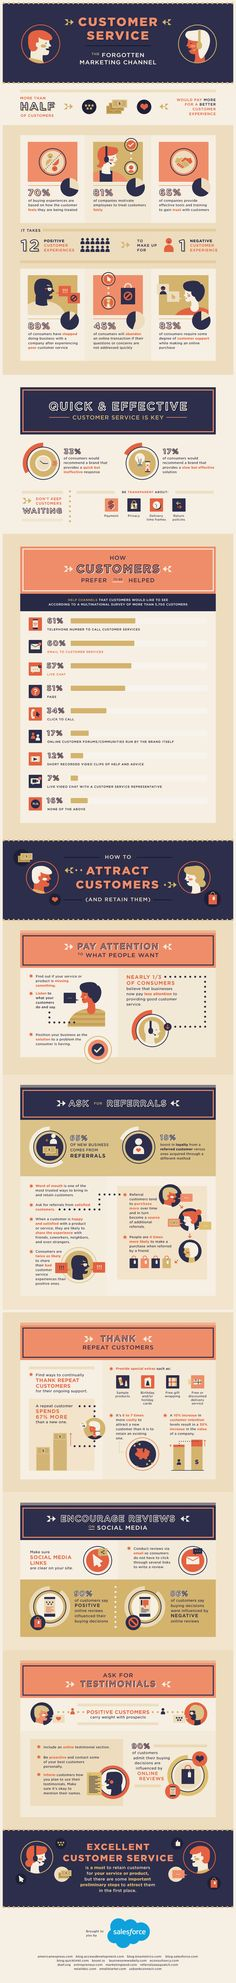 Quick and effective service should be top of mind for any business. Check this infographic: Customer Service - The Forgotten Marketing Channel service Business Marketing, Online Marketing, Digital Marketing, Service Marketing, Marketing Tools, Microsoft Advertising, Customer Service Experience, Web Design, Marketing Channel